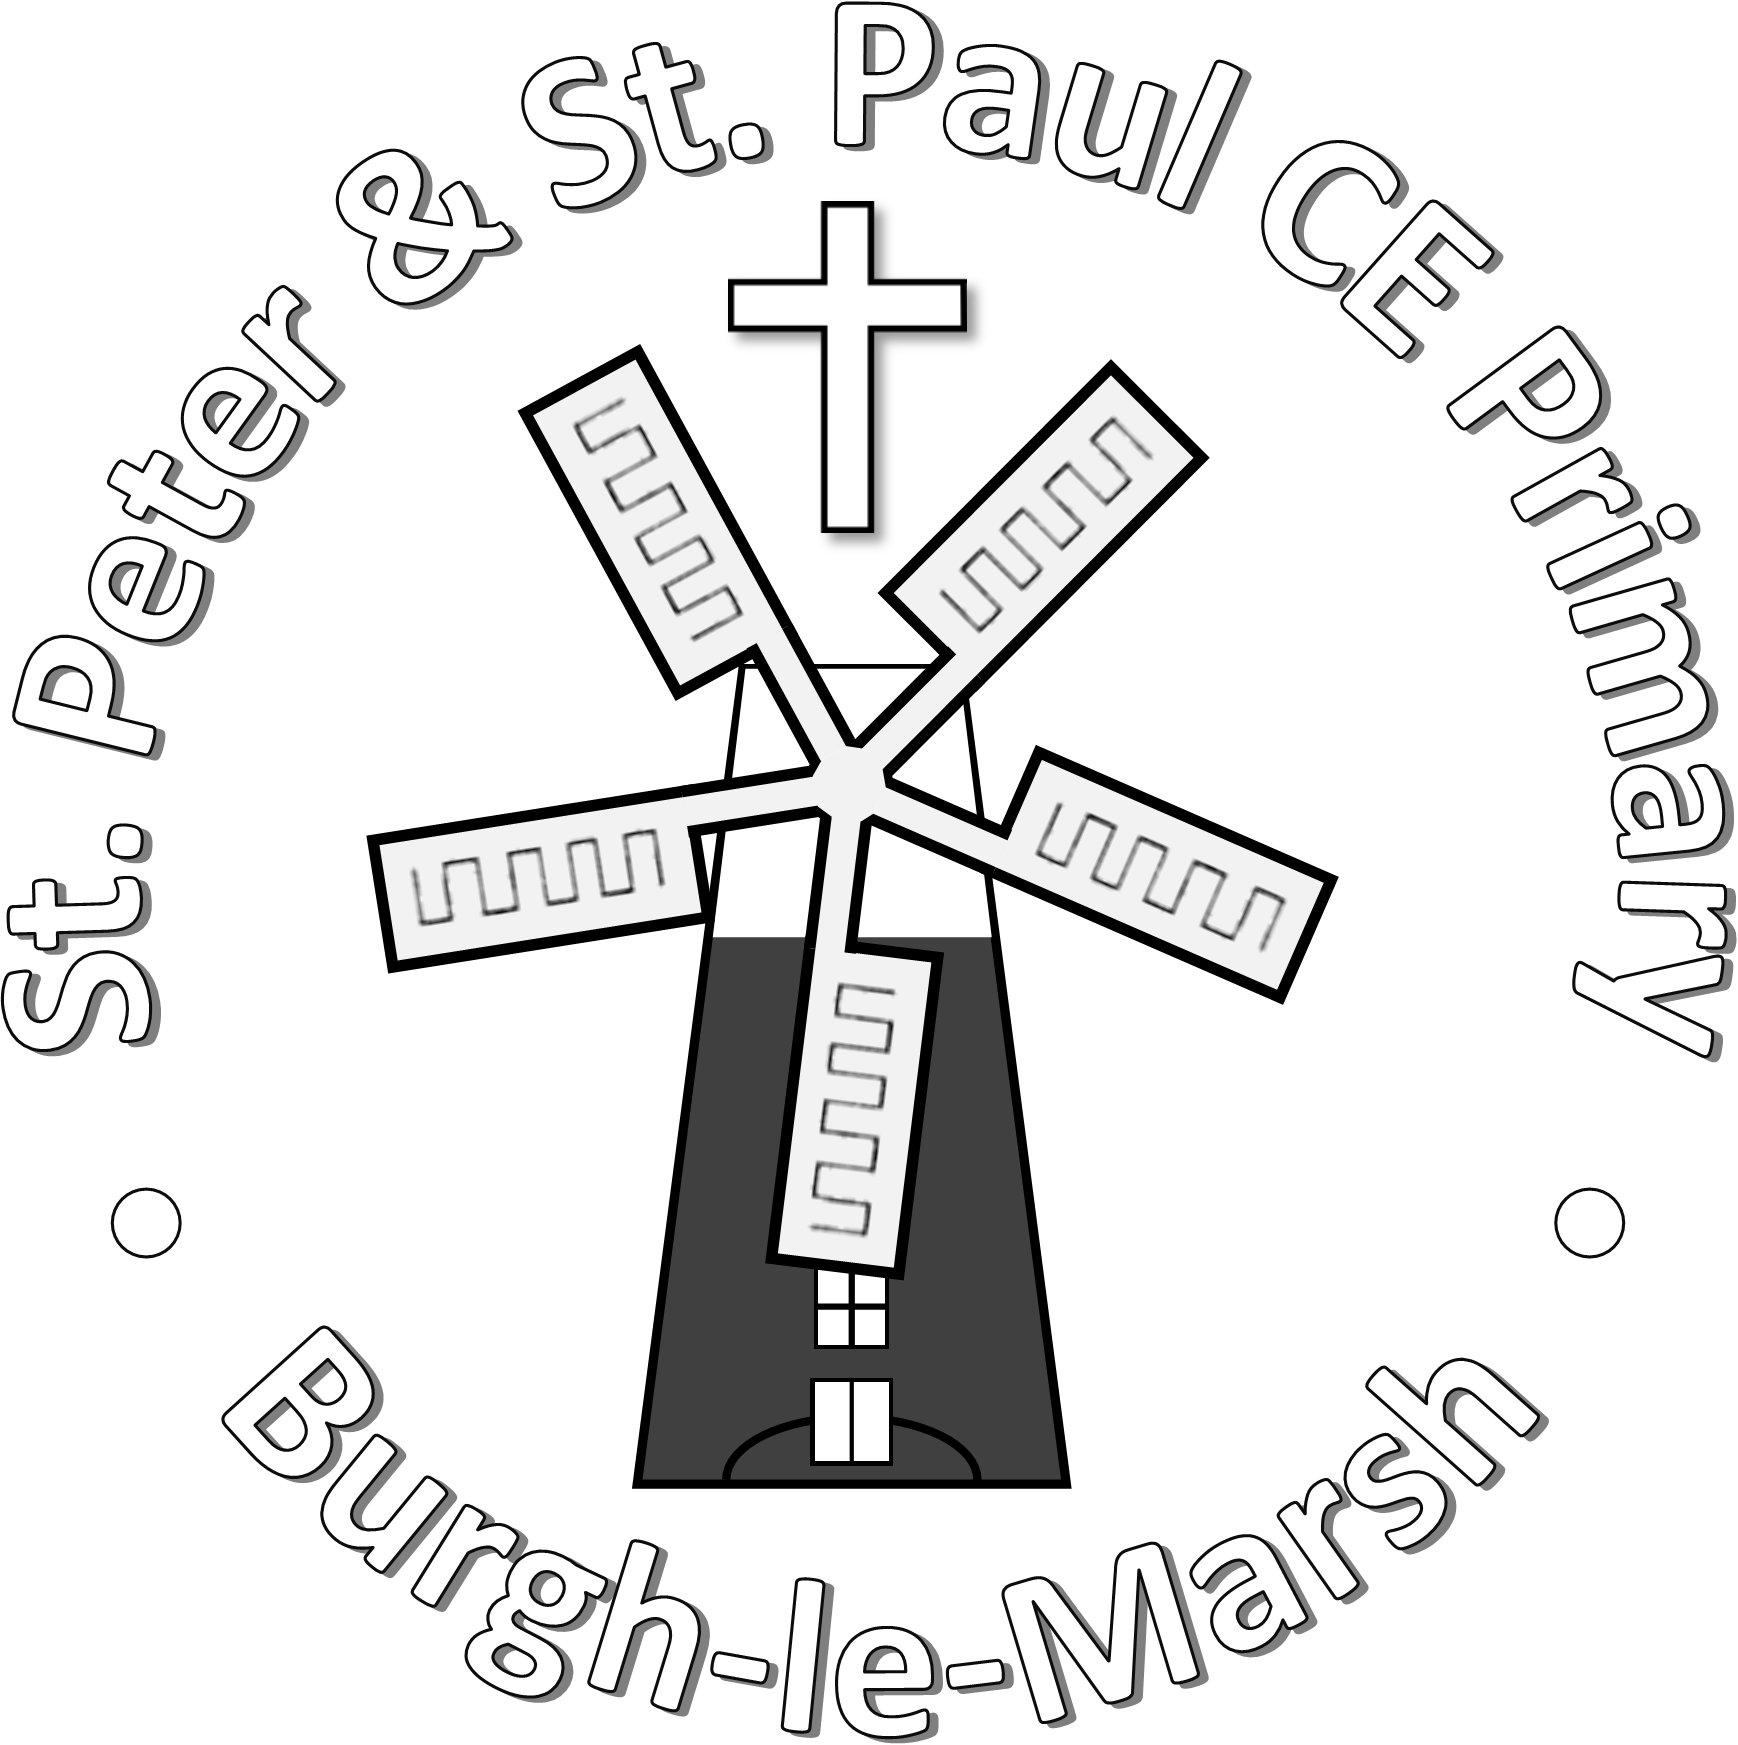 St Peter & St Paul CE Primary School Burgh le Marsh